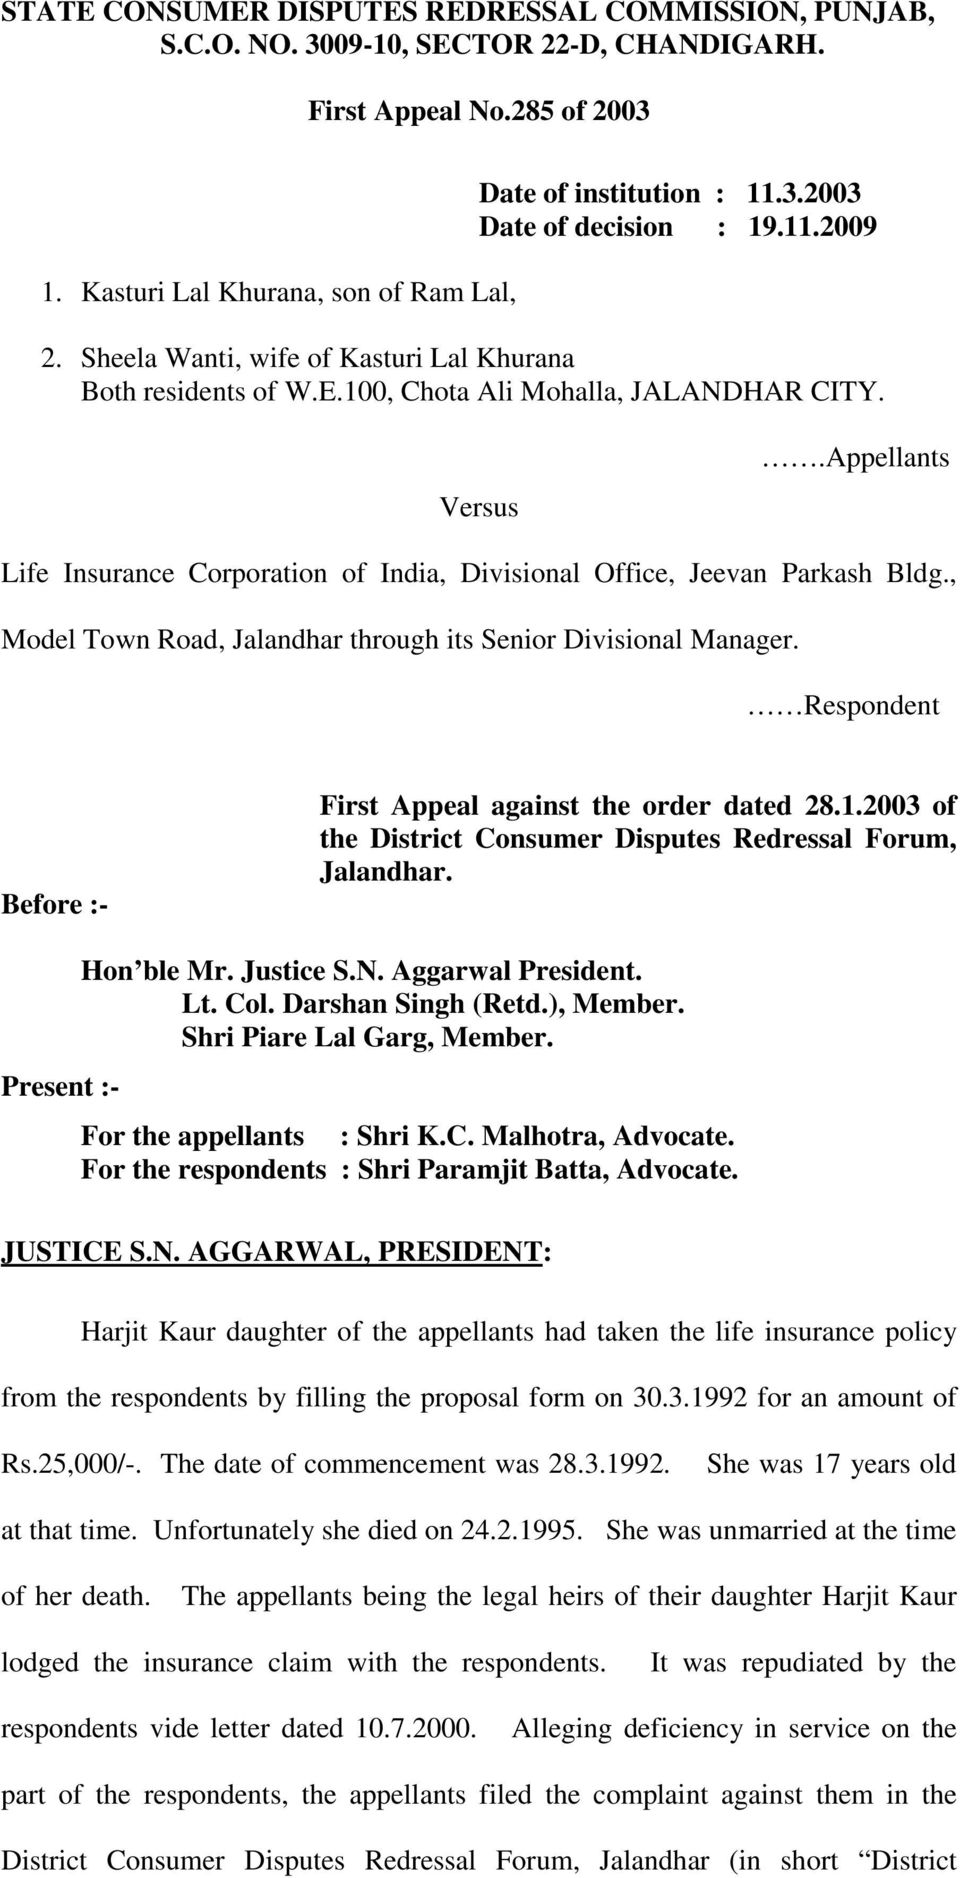 Appellants Life Insurance Corporation of India, Divisional Office, Jeevan Parkash Bldg., Model Town Road, Jalandhar through its Senior Divisional Manager.